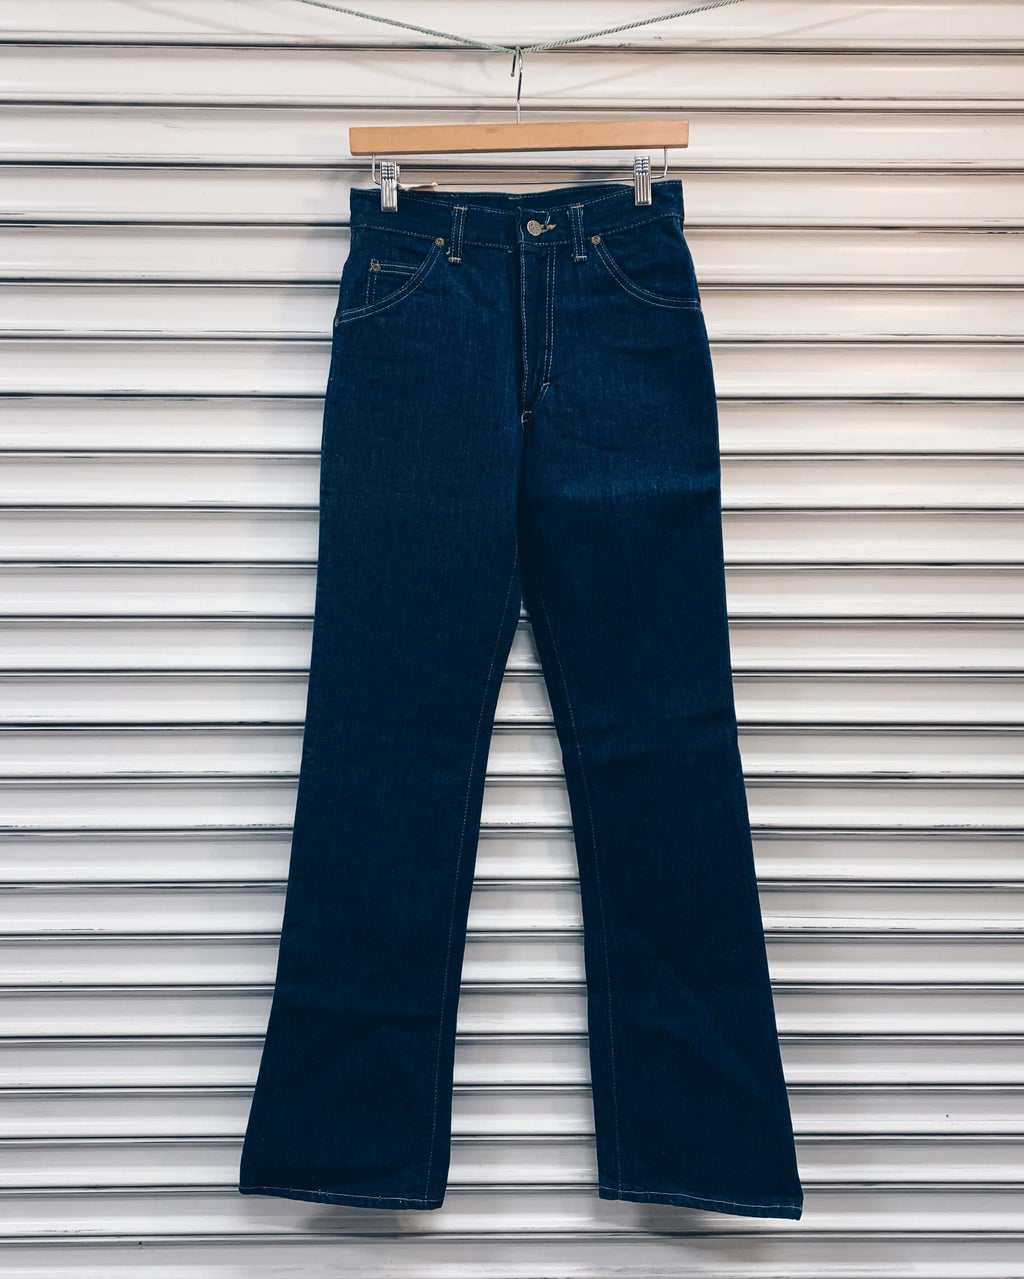 Deadstock Lee Jeans - 28